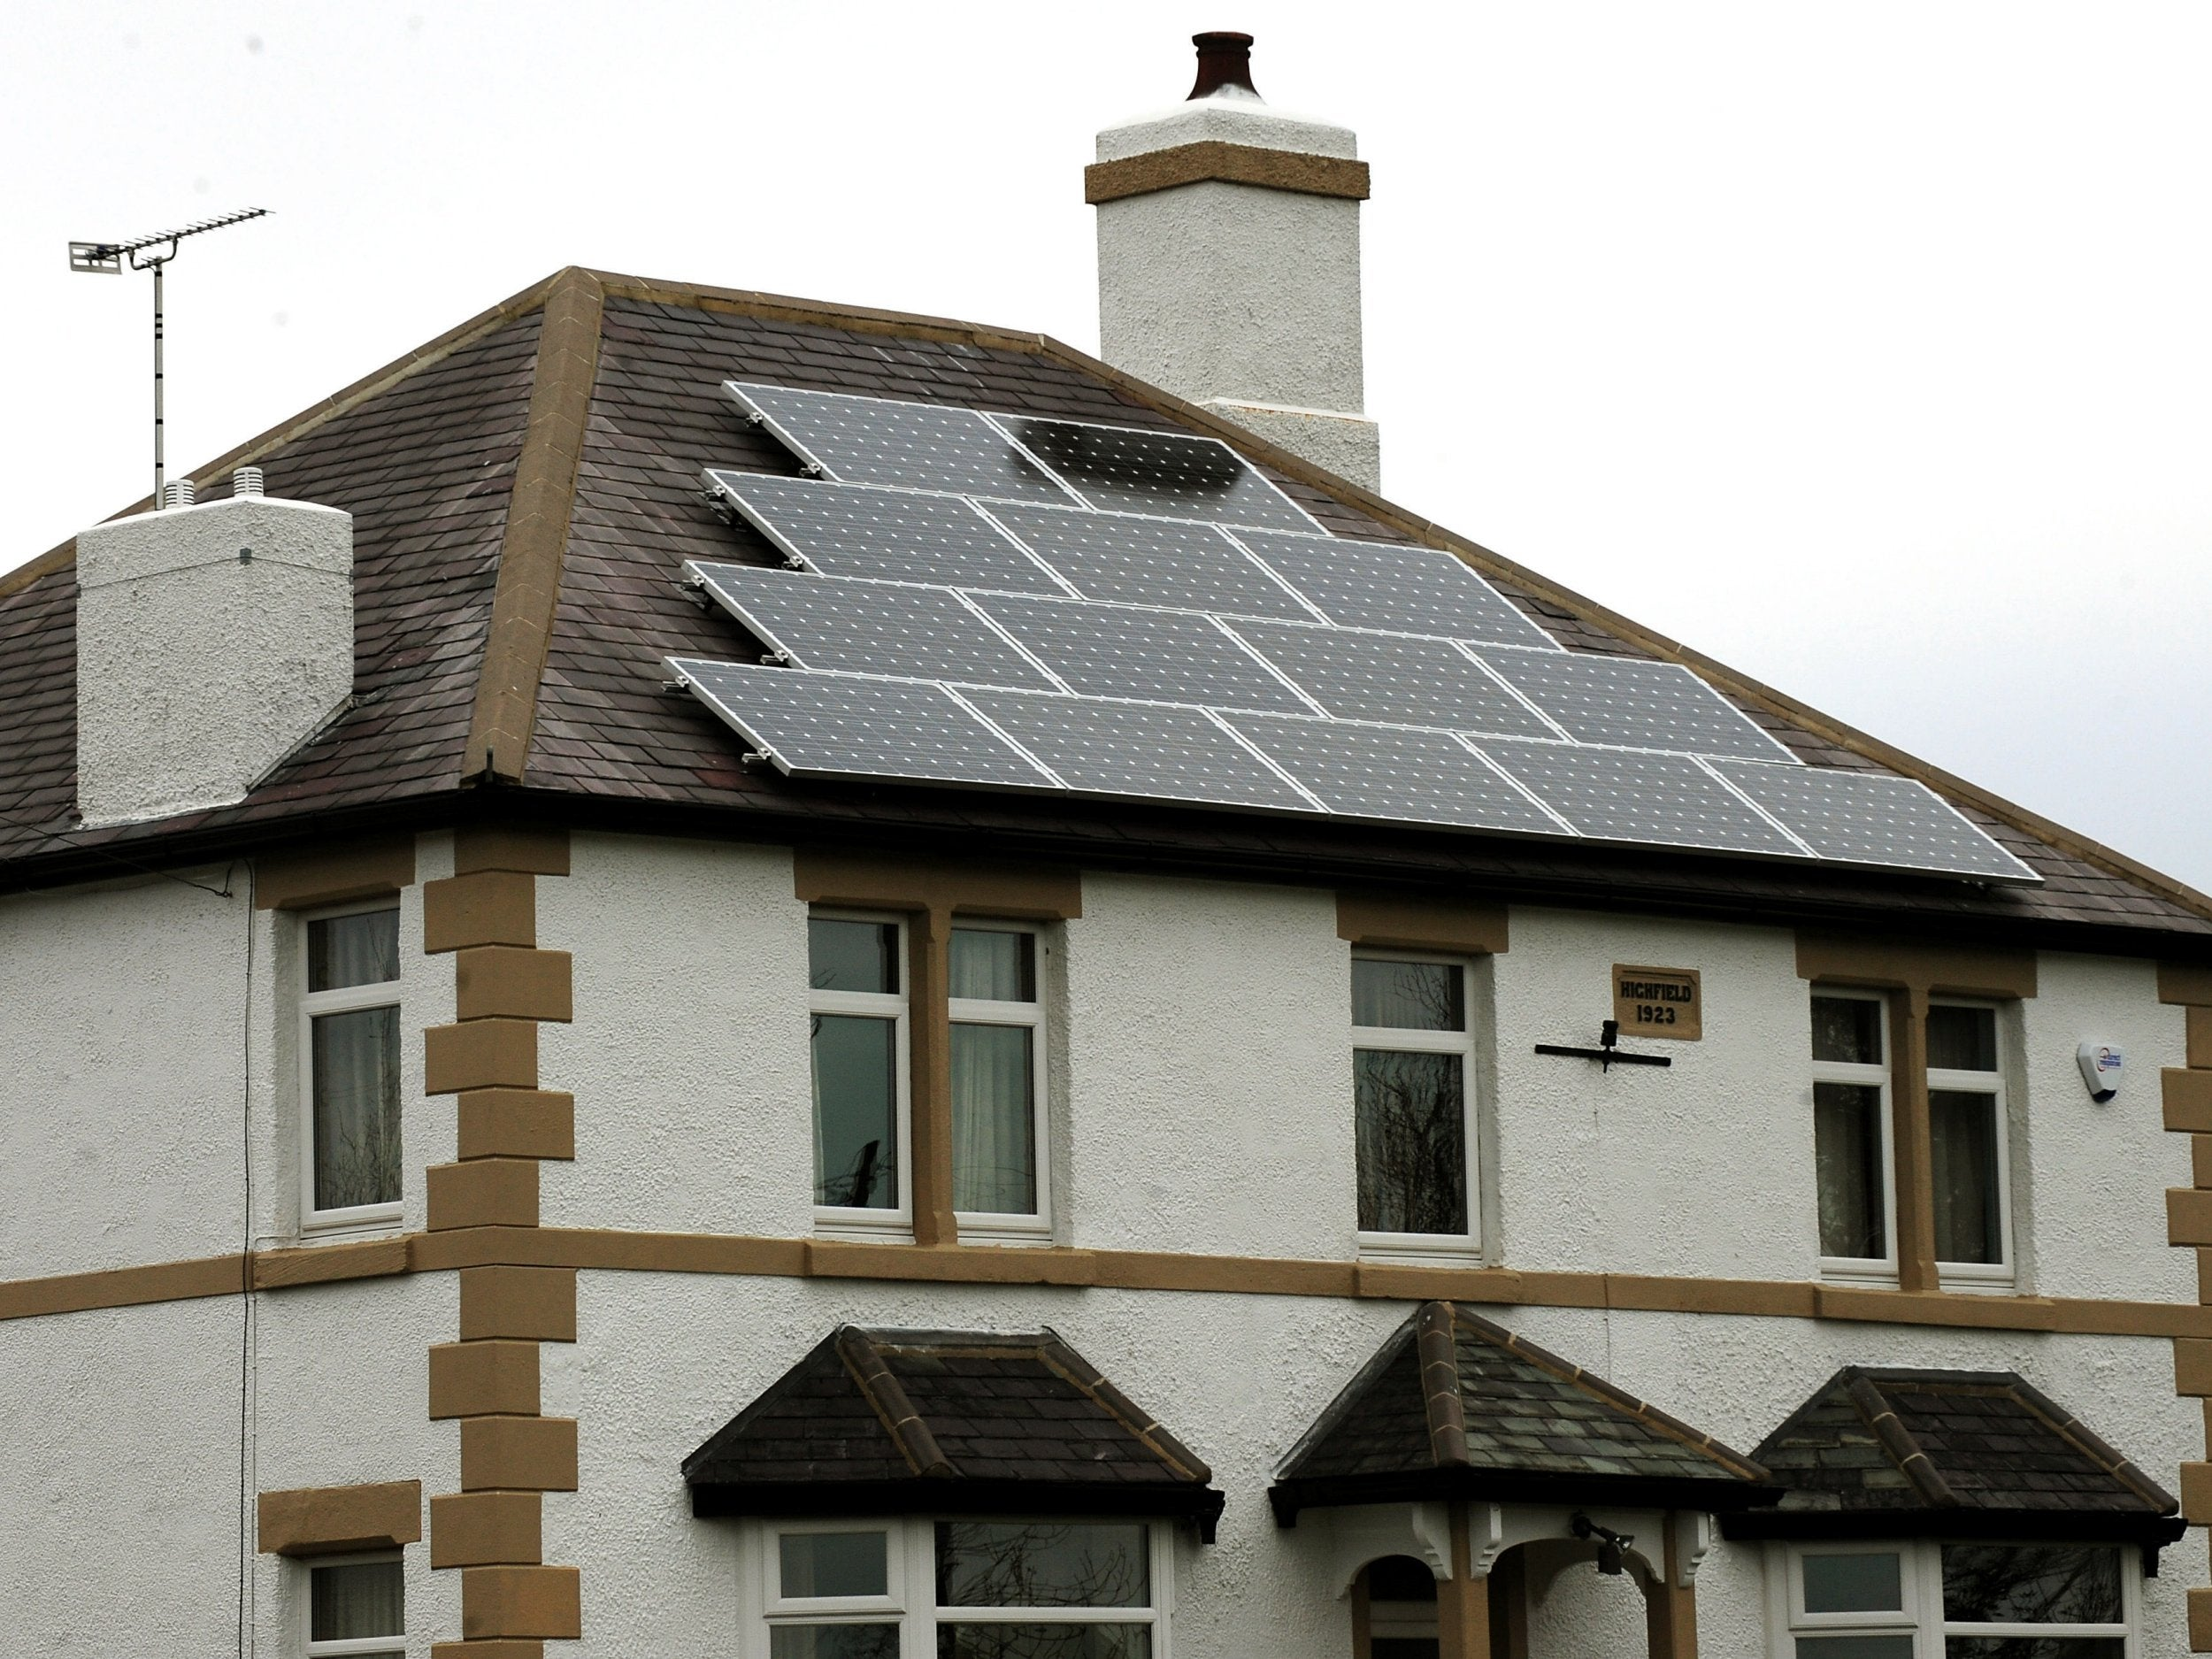 Solar Panel Households To Be Paid For Surplus Power Under